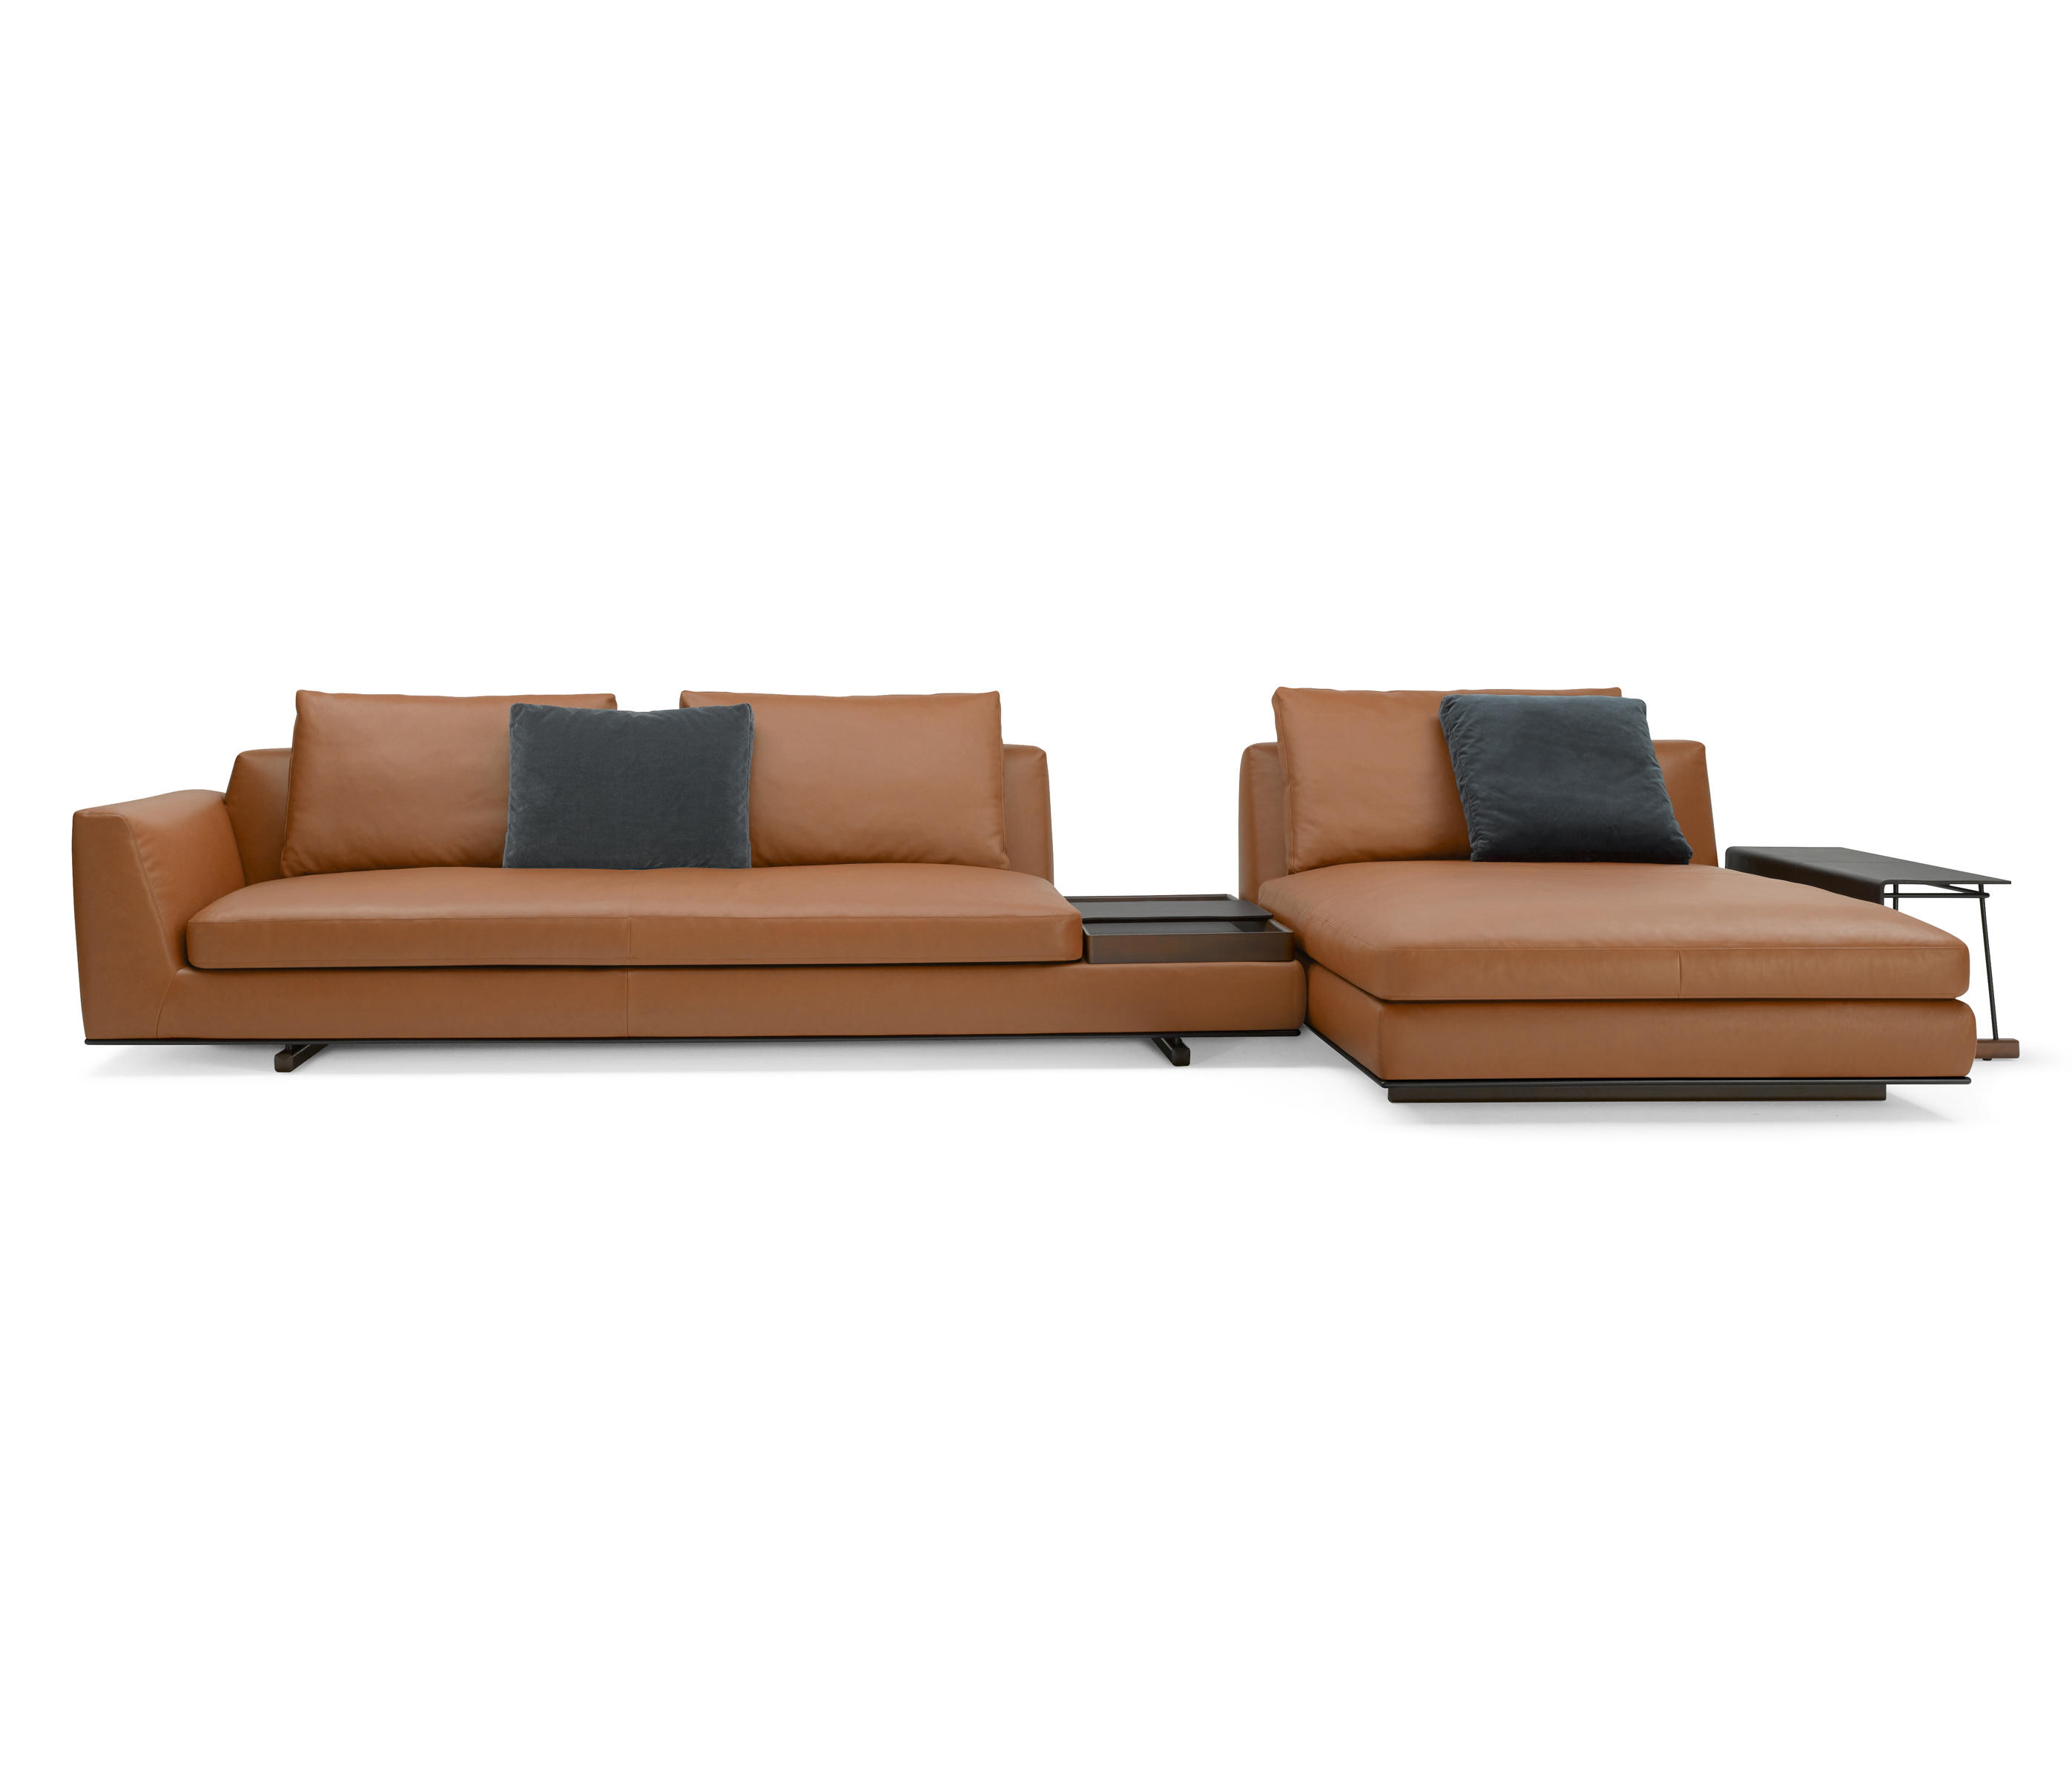 tama living lounge sofas from walter knoll architonic. Black Bedroom Furniture Sets. Home Design Ideas